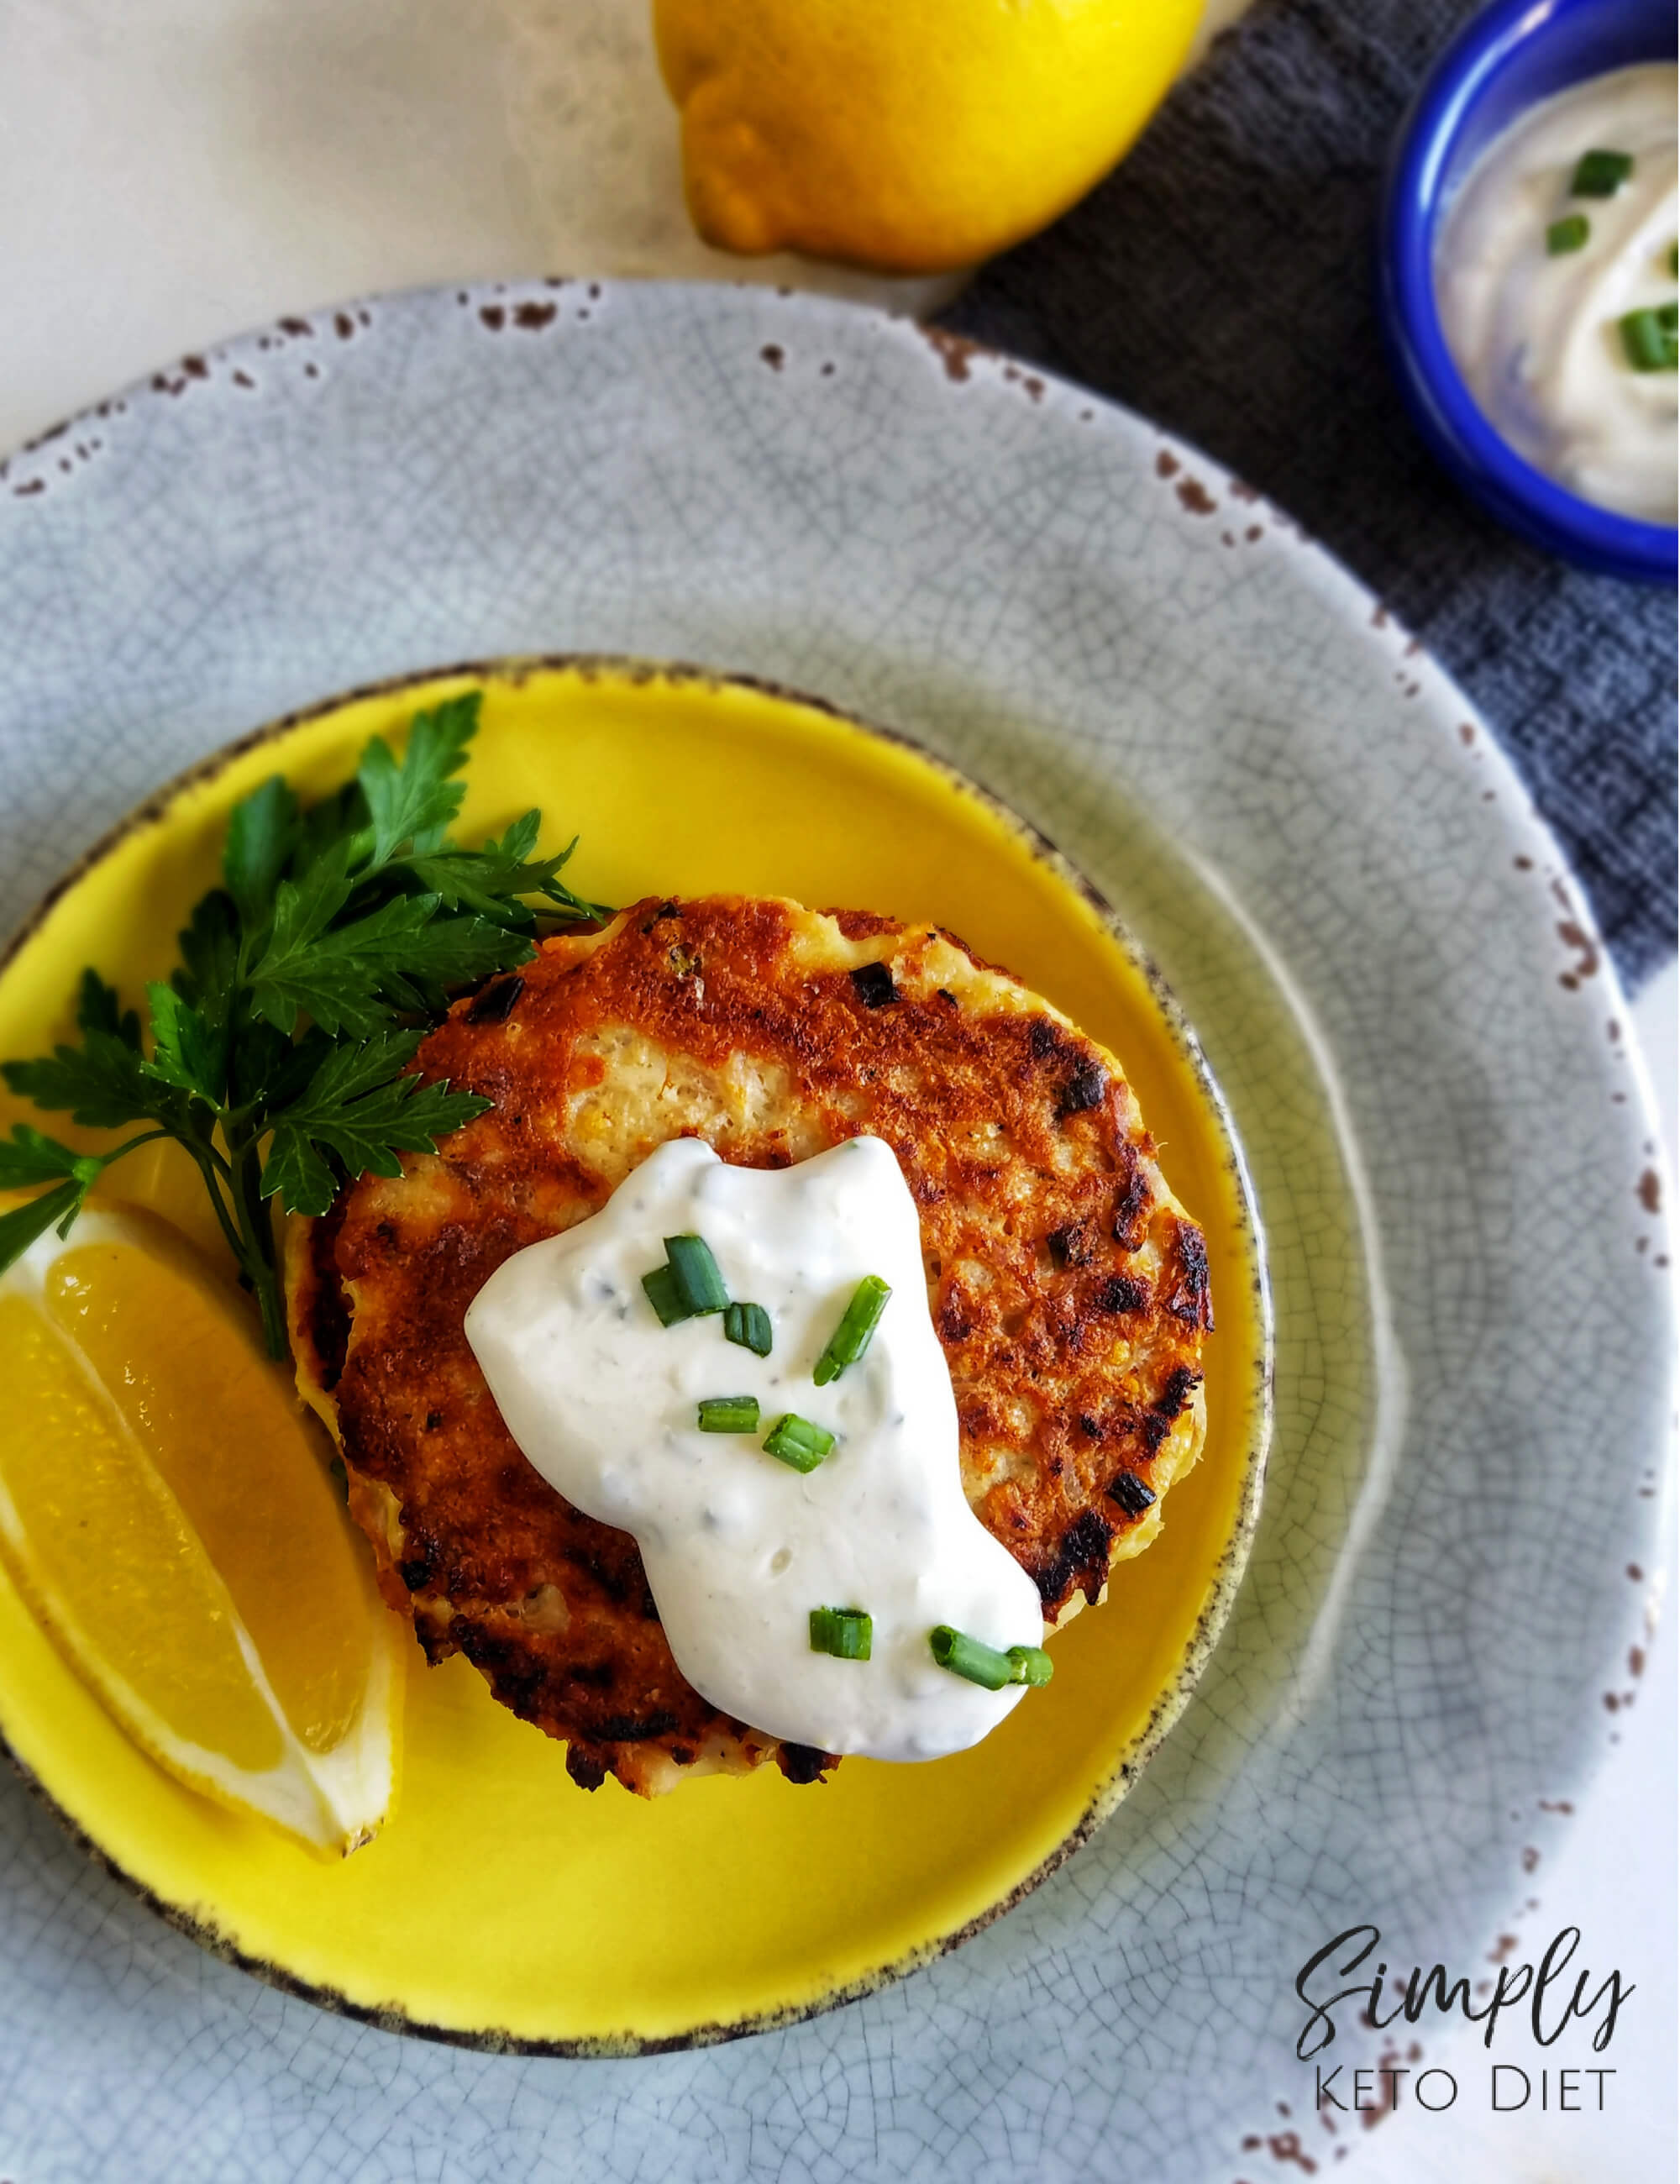 Low Carb Keto Tuna Cakes with Lemon Dijon Sauce